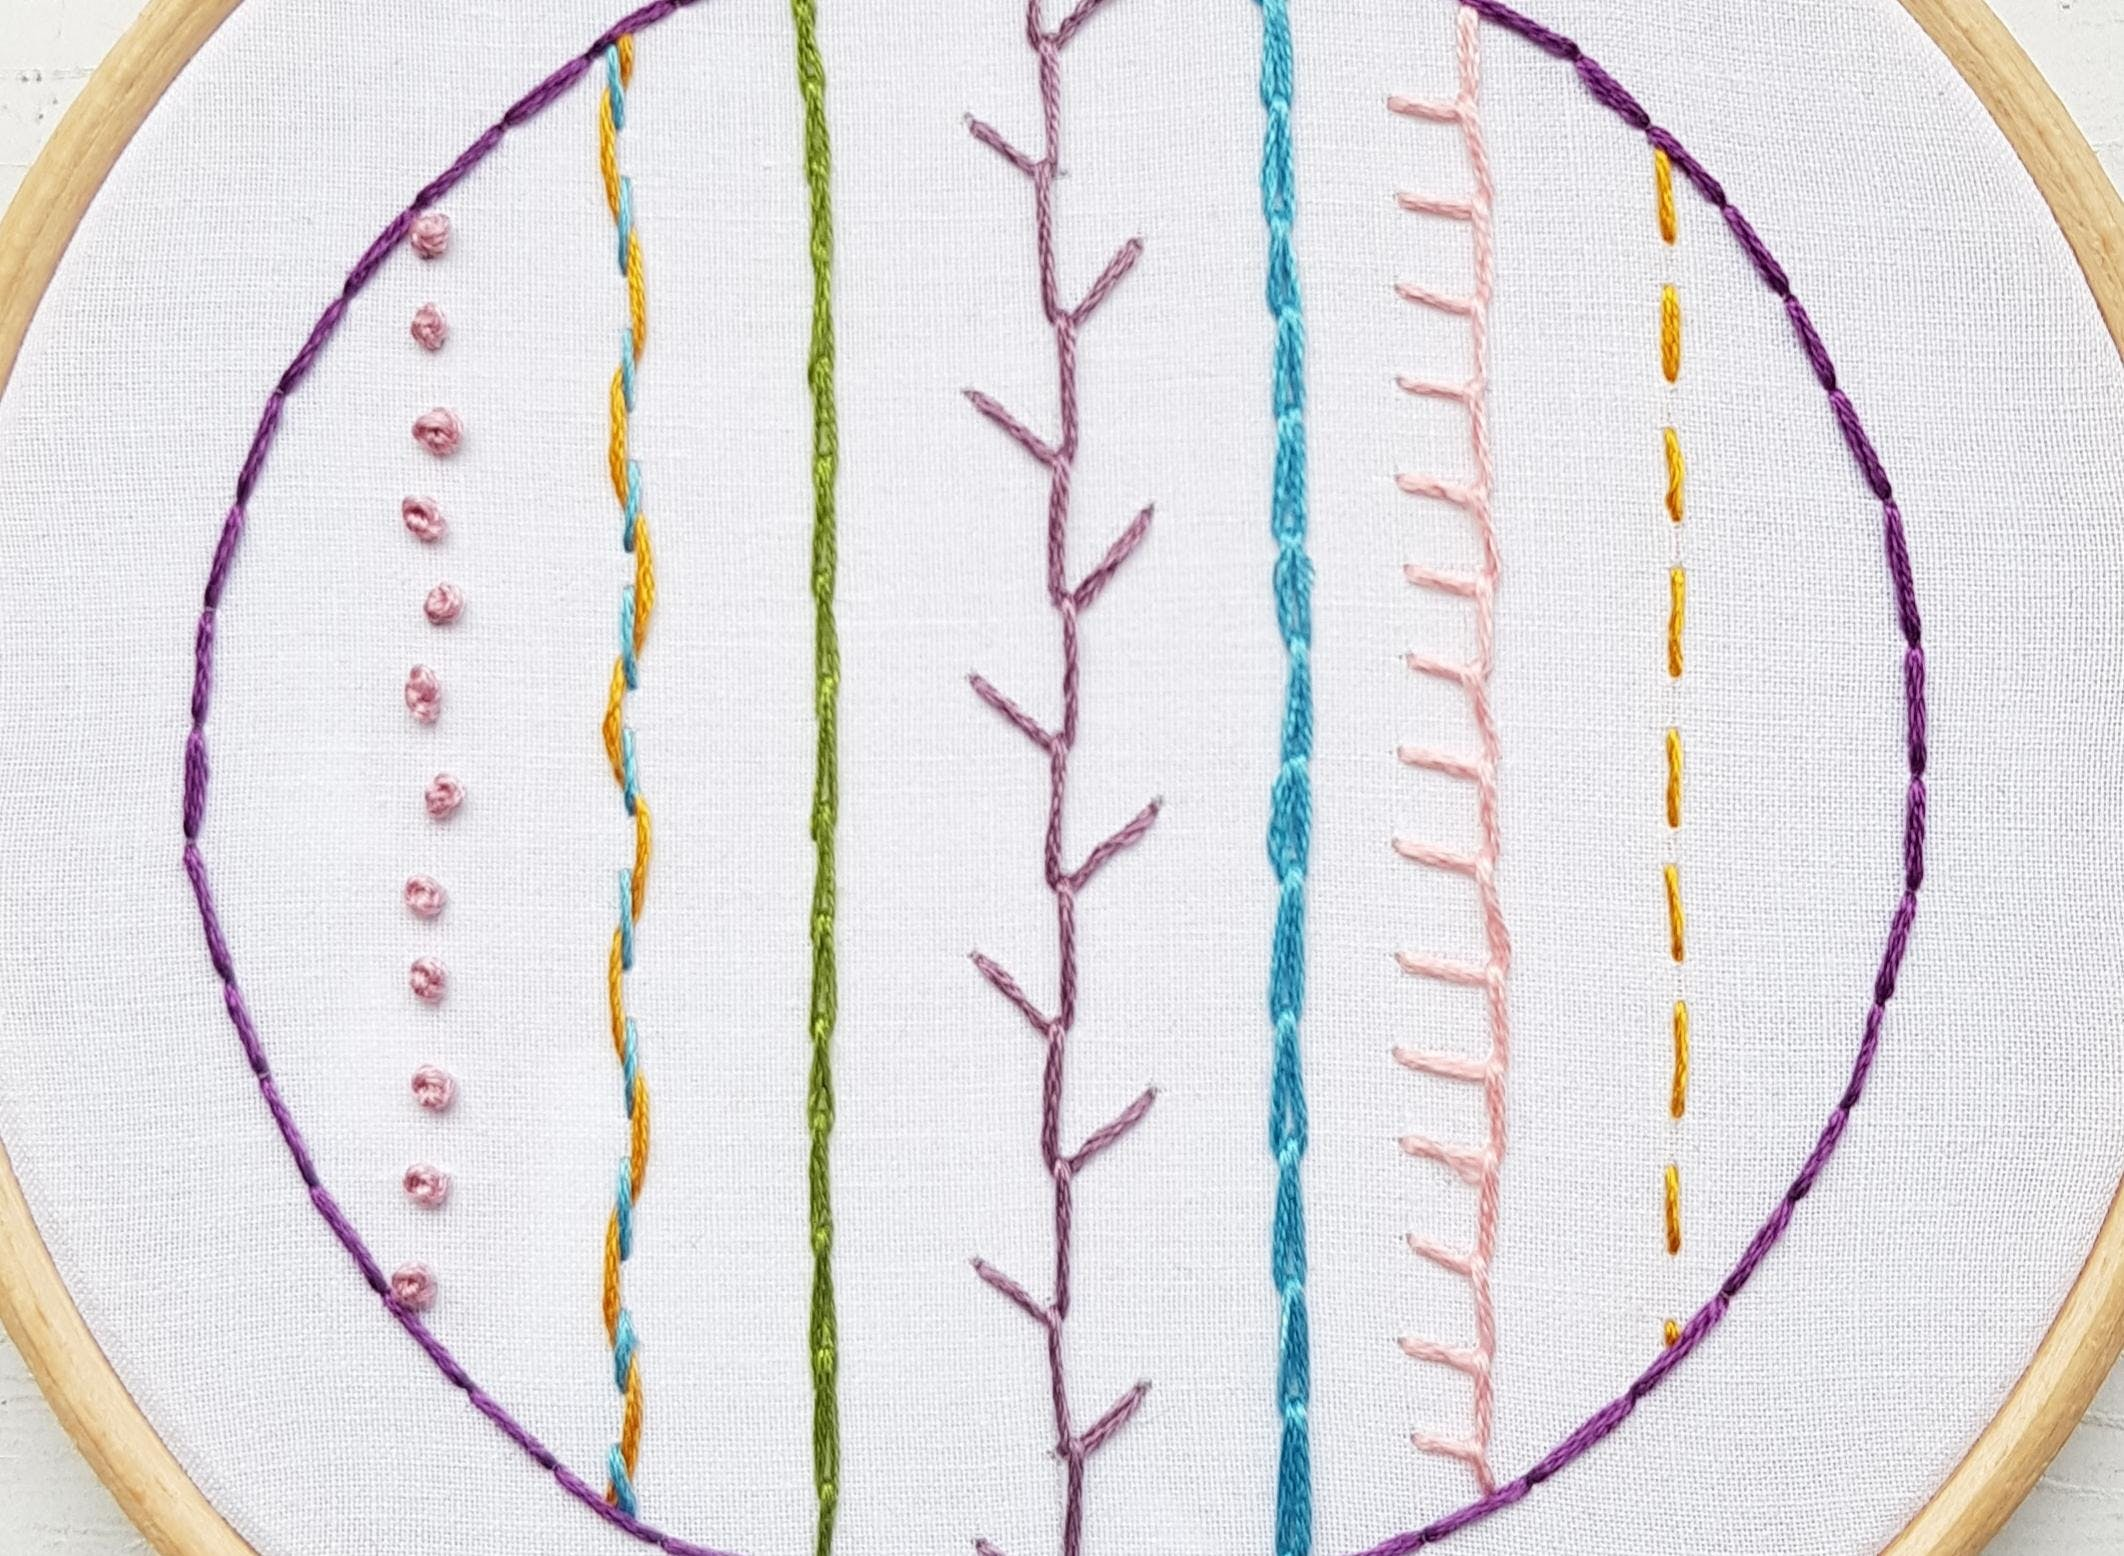 Hand Embroidery Workshop For Beginners Natalie Gaynor Designs At